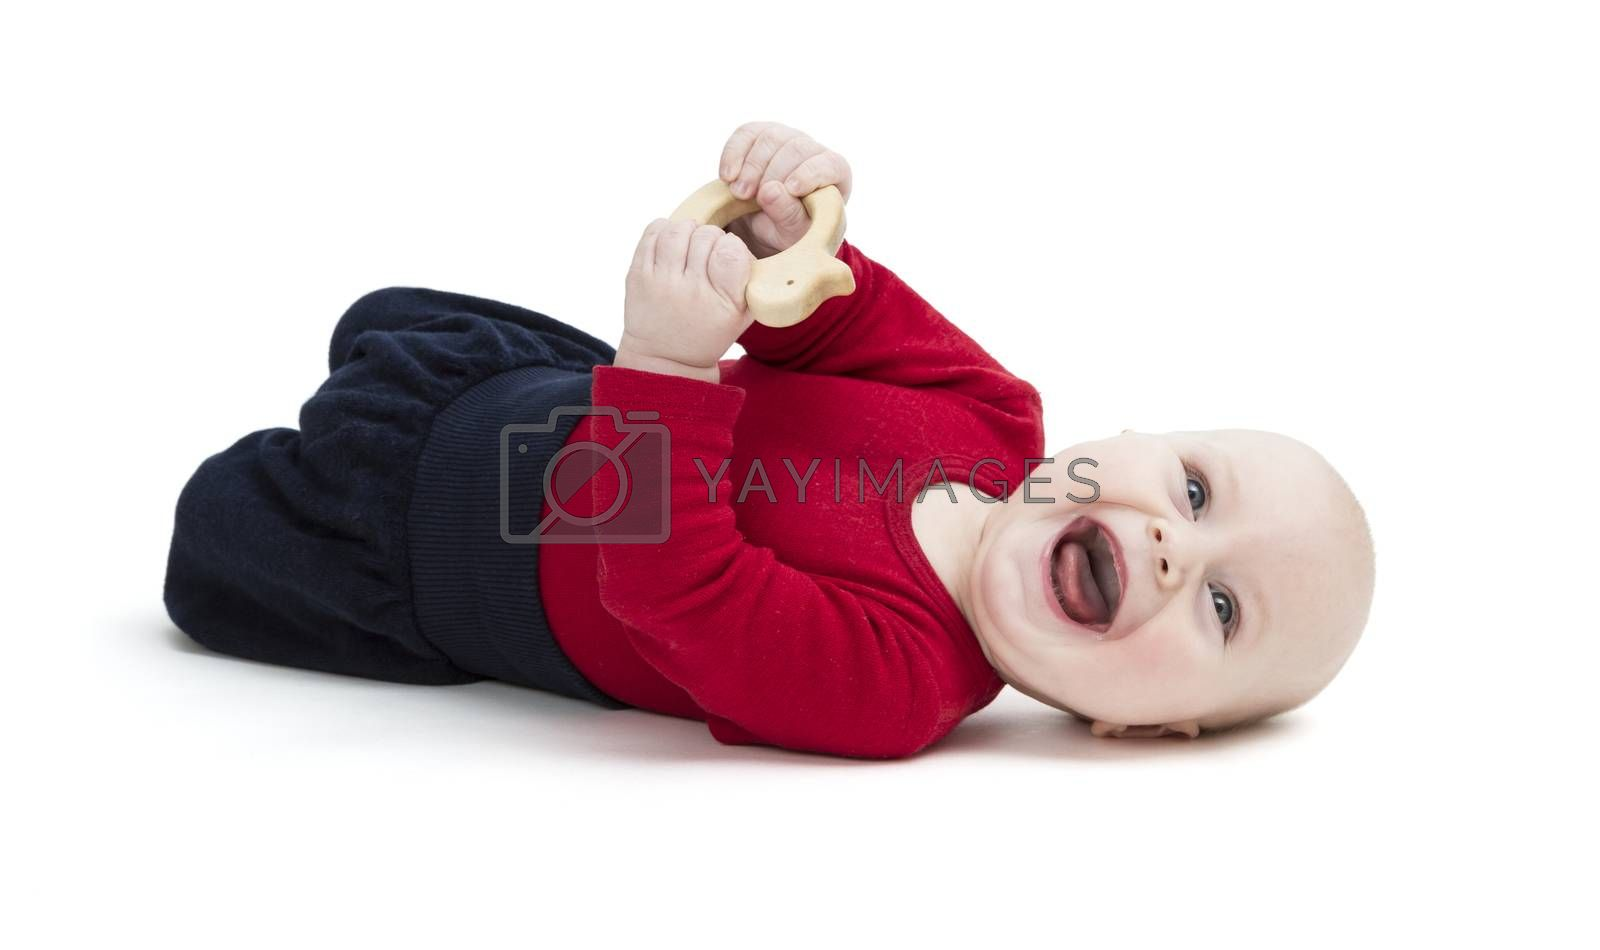 laughing baby in red shirt on floor. isolated on white background